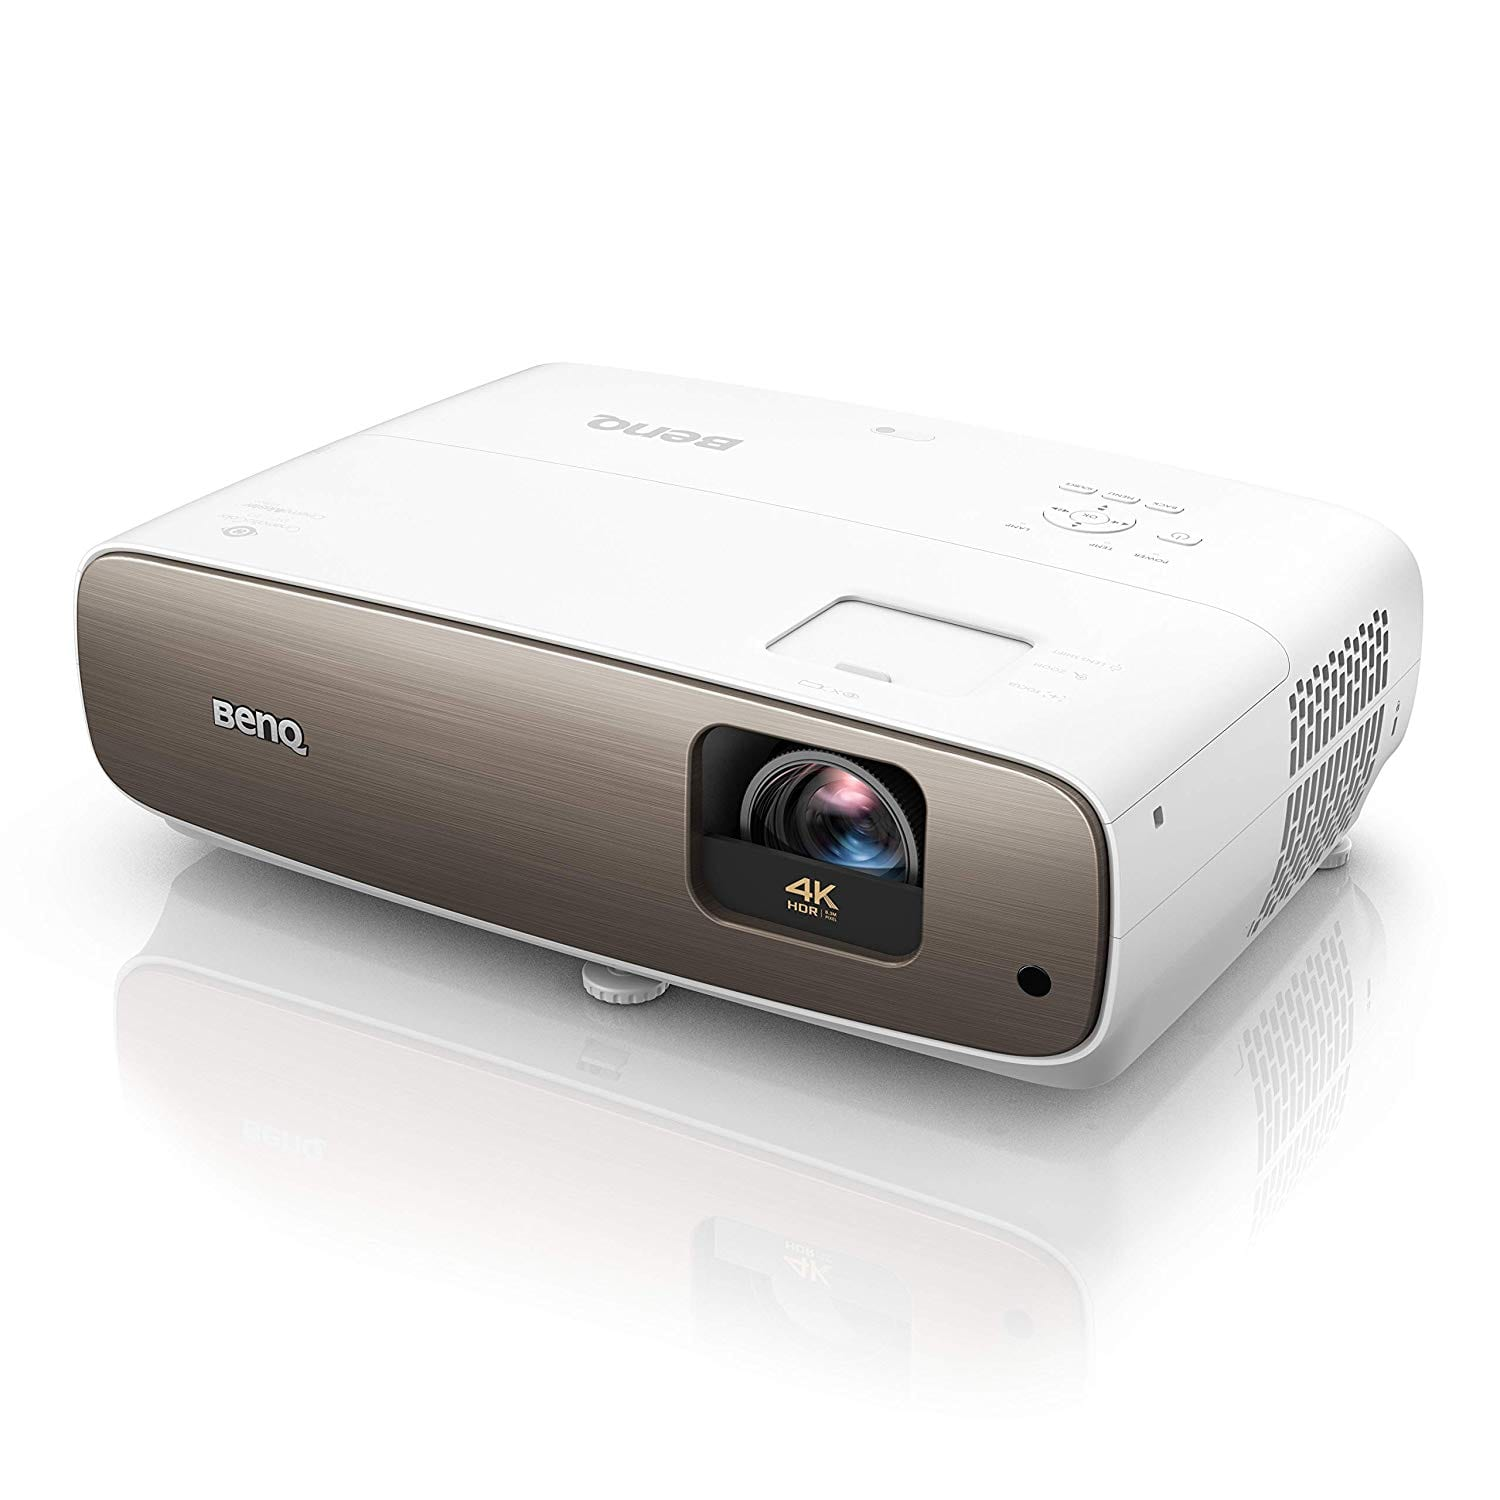 BenQ HT3550 4K Home Theater Projector, Amazon $1310